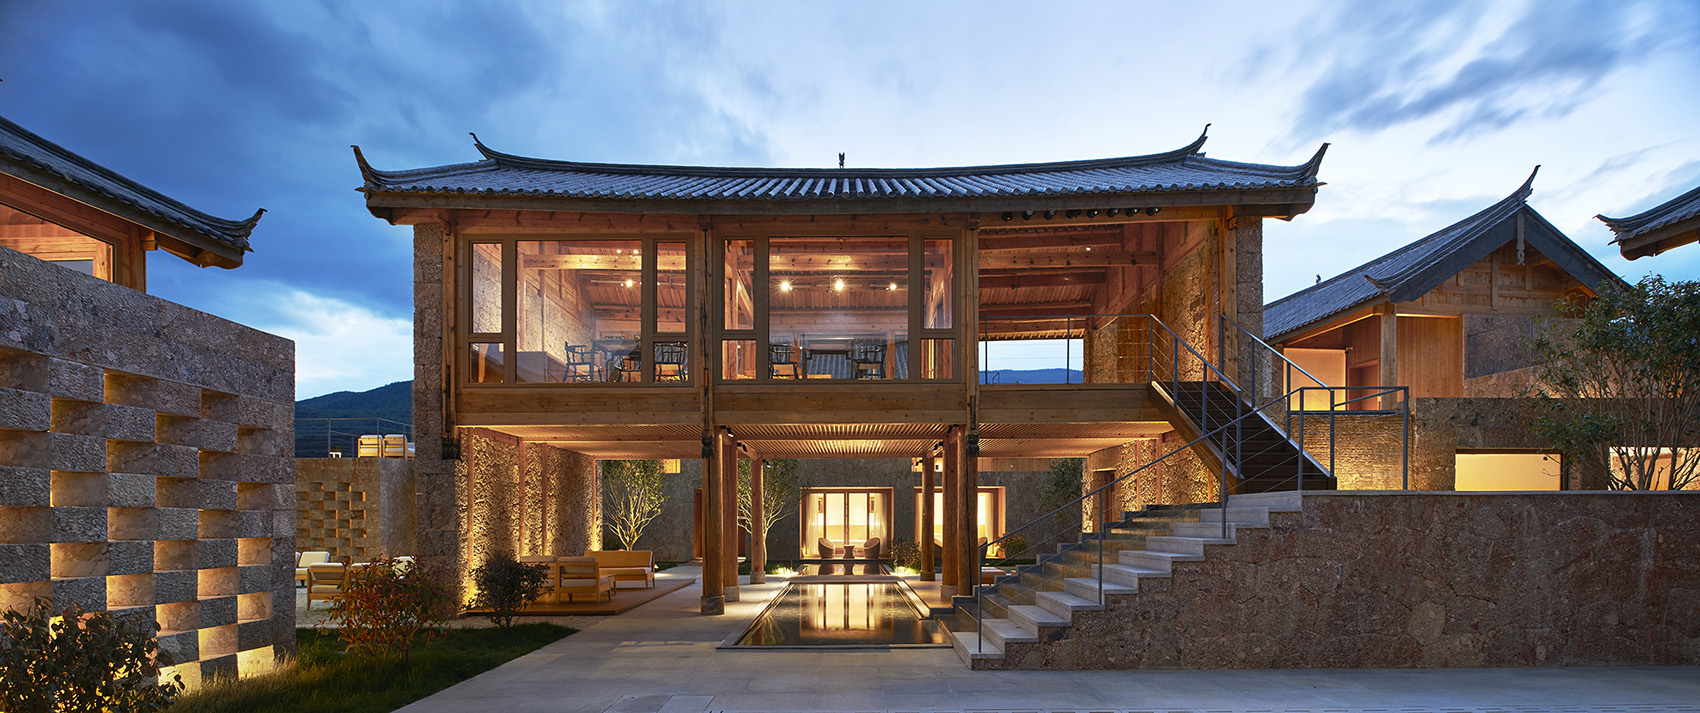 041-tsingpu-baisha-retreat-china-by-tsutsumi-associates